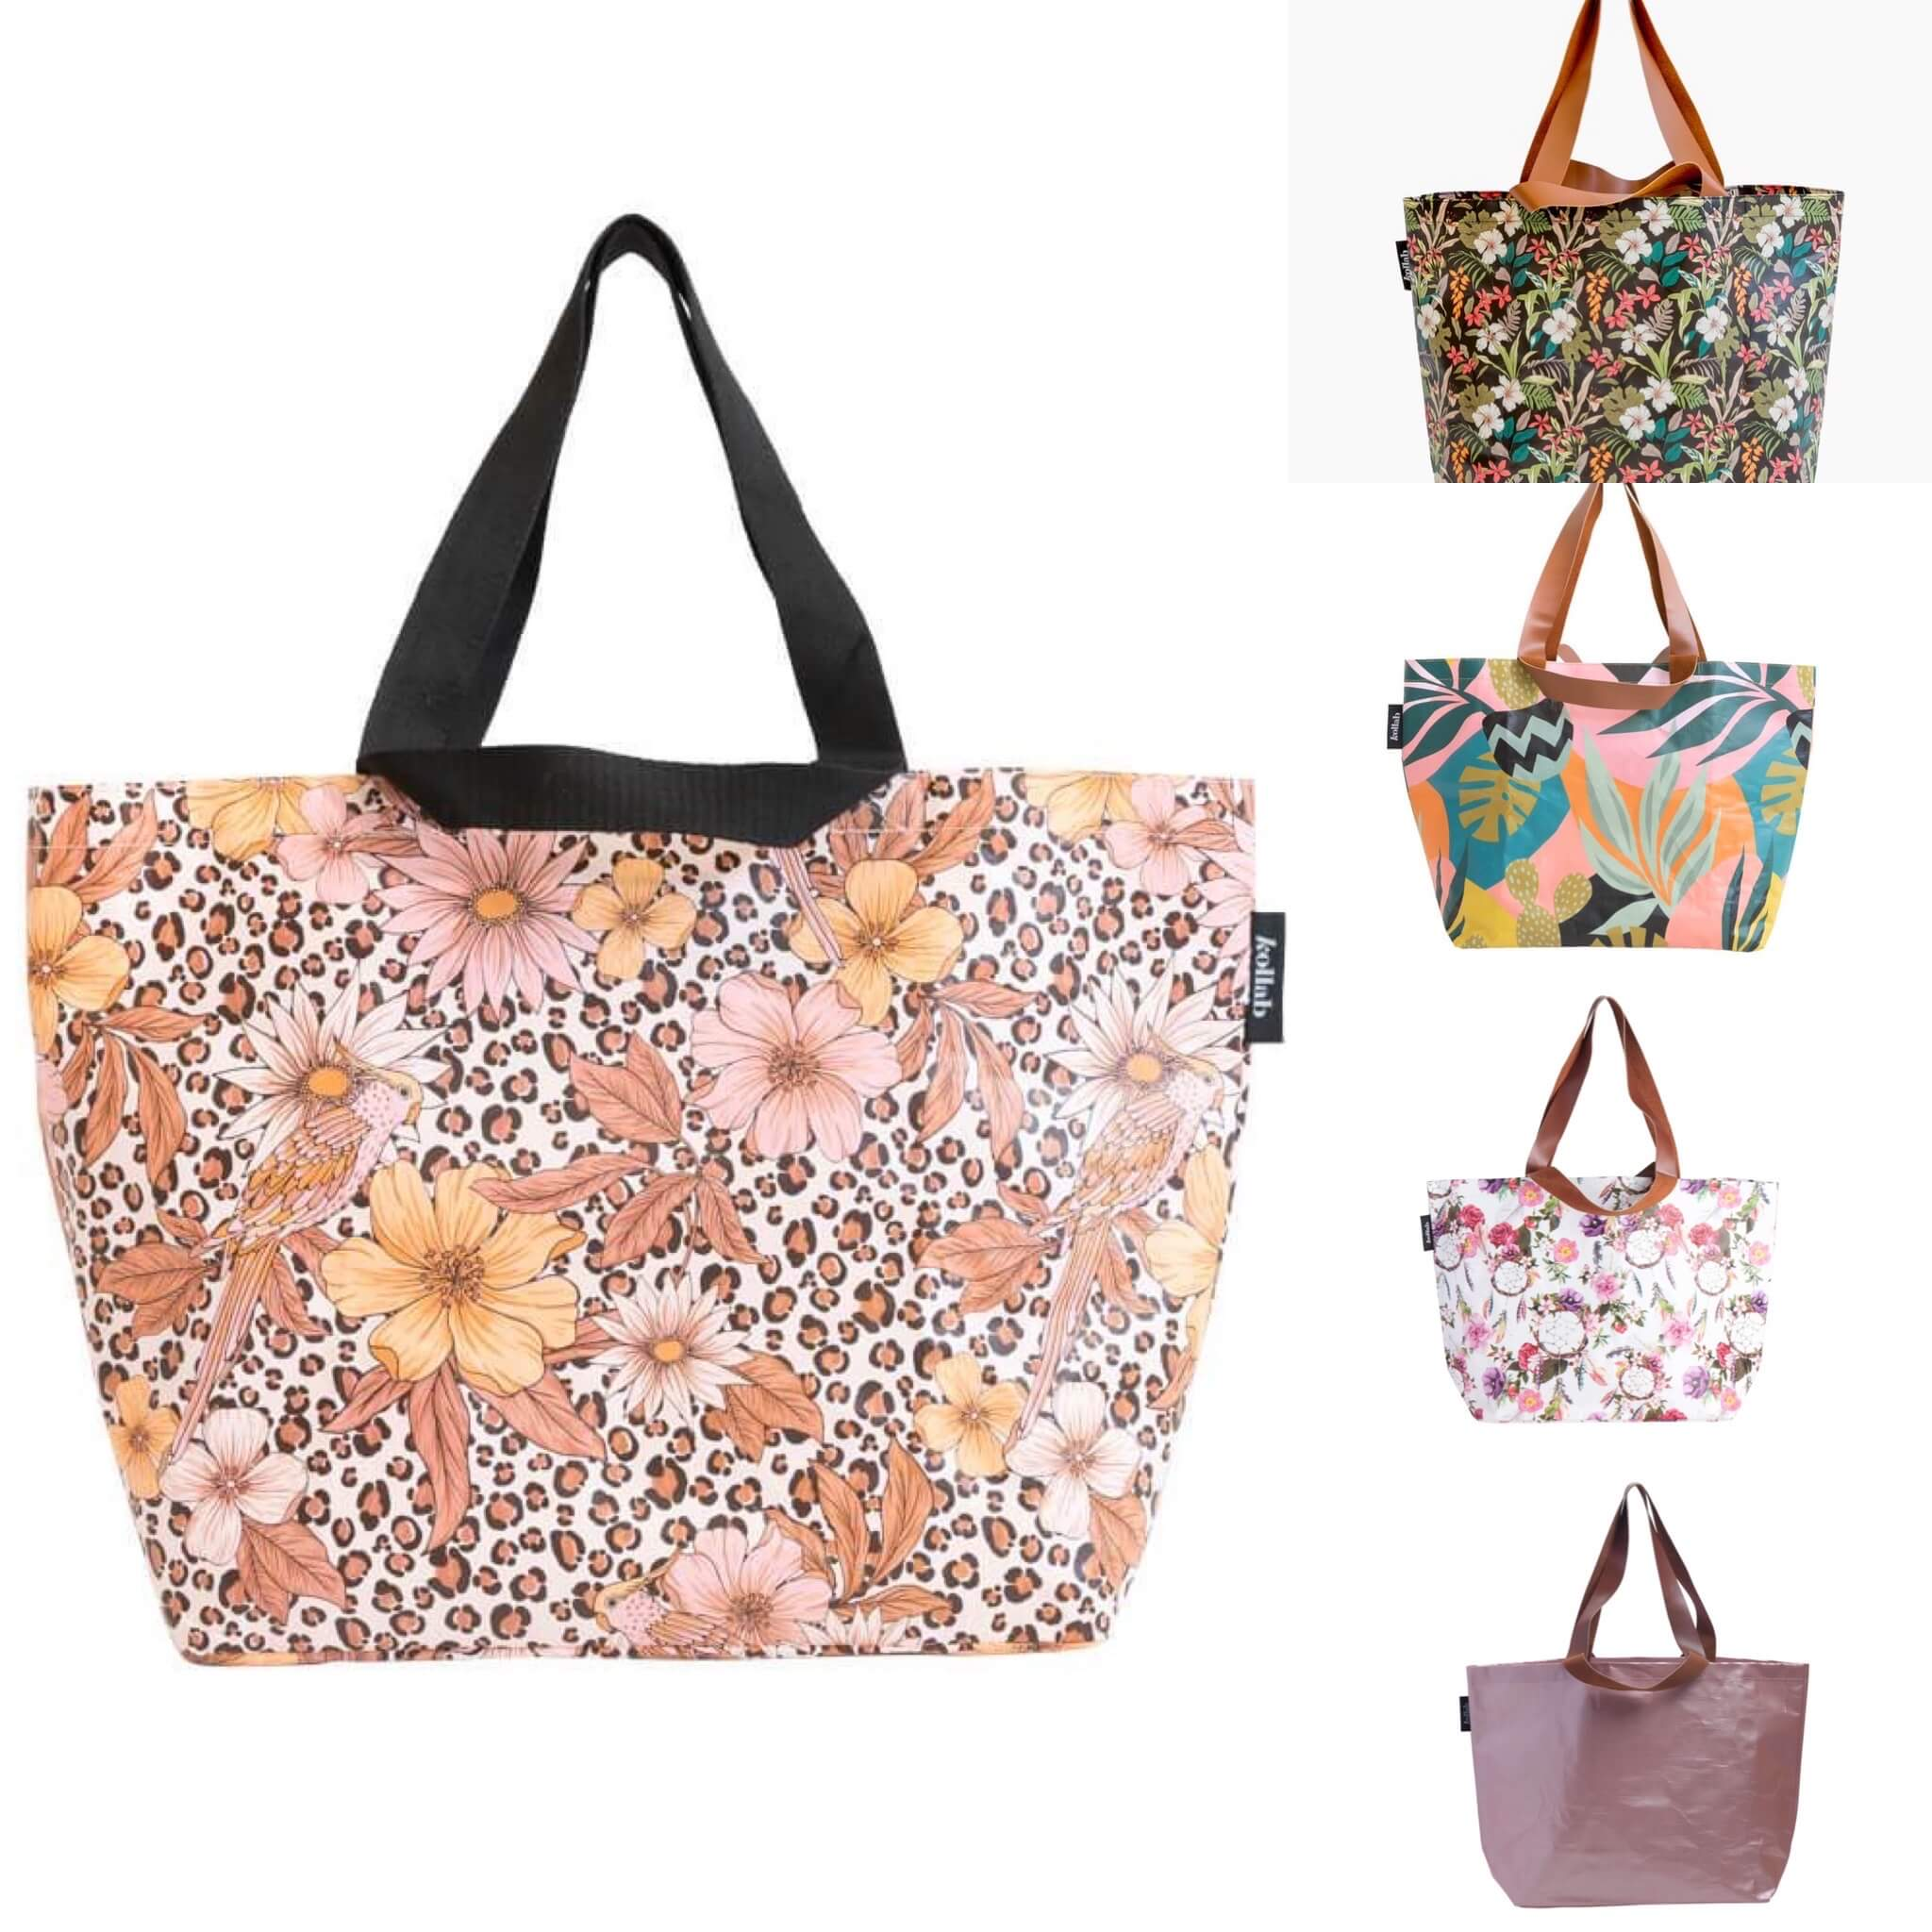 kollab shopper tote boho monstera cactus hibiscus leopard floral rose gold | The Home Maven